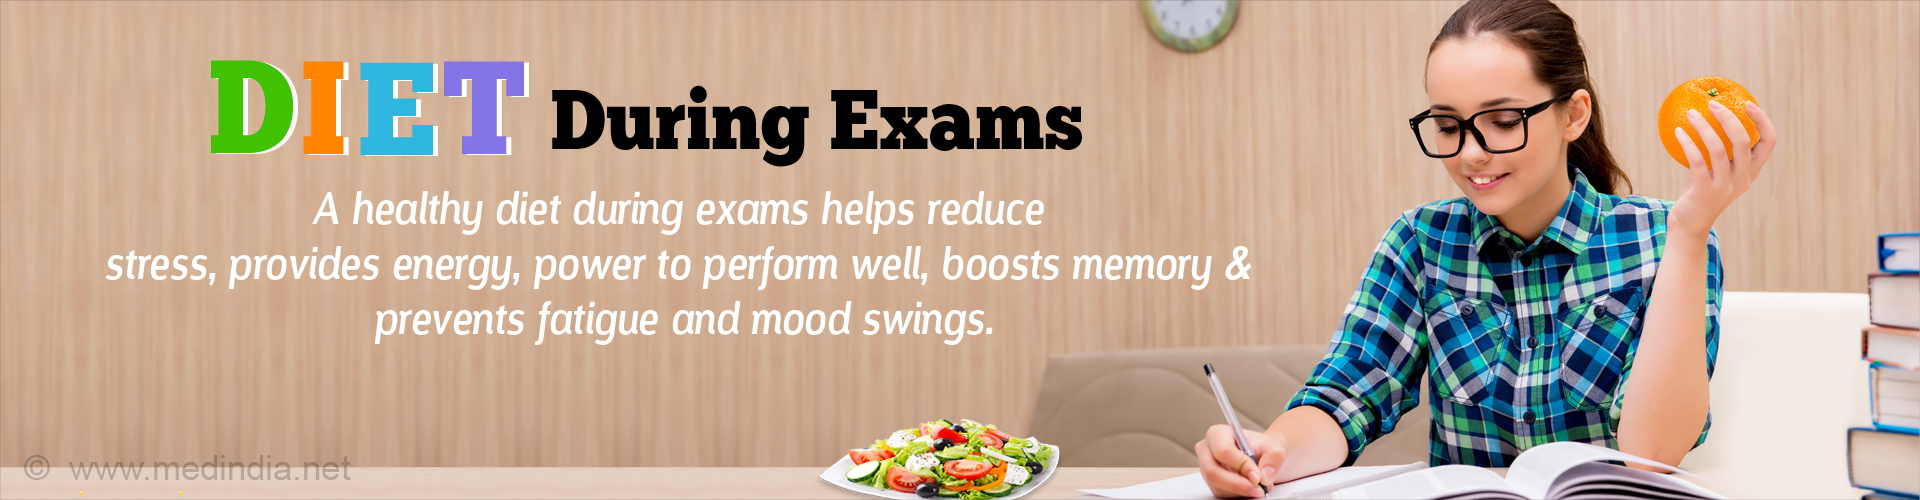 Win Over Exam Stress with a Healthy Diet